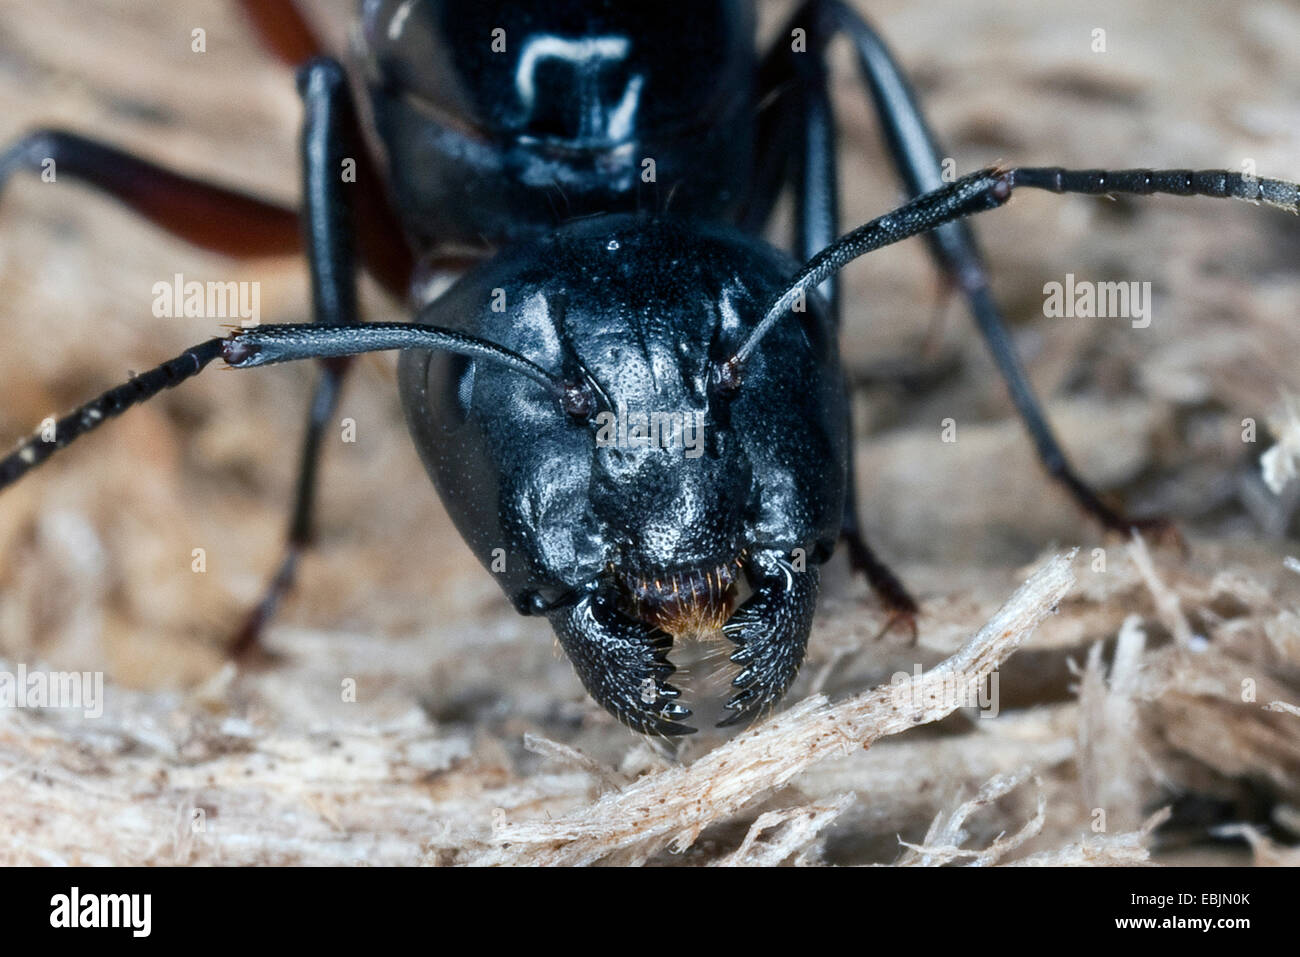 Carpenter ant (Camponotus ligniperdus, Camponotus ligniperda), queen feeding on rotting wood, Germany Stock Photo